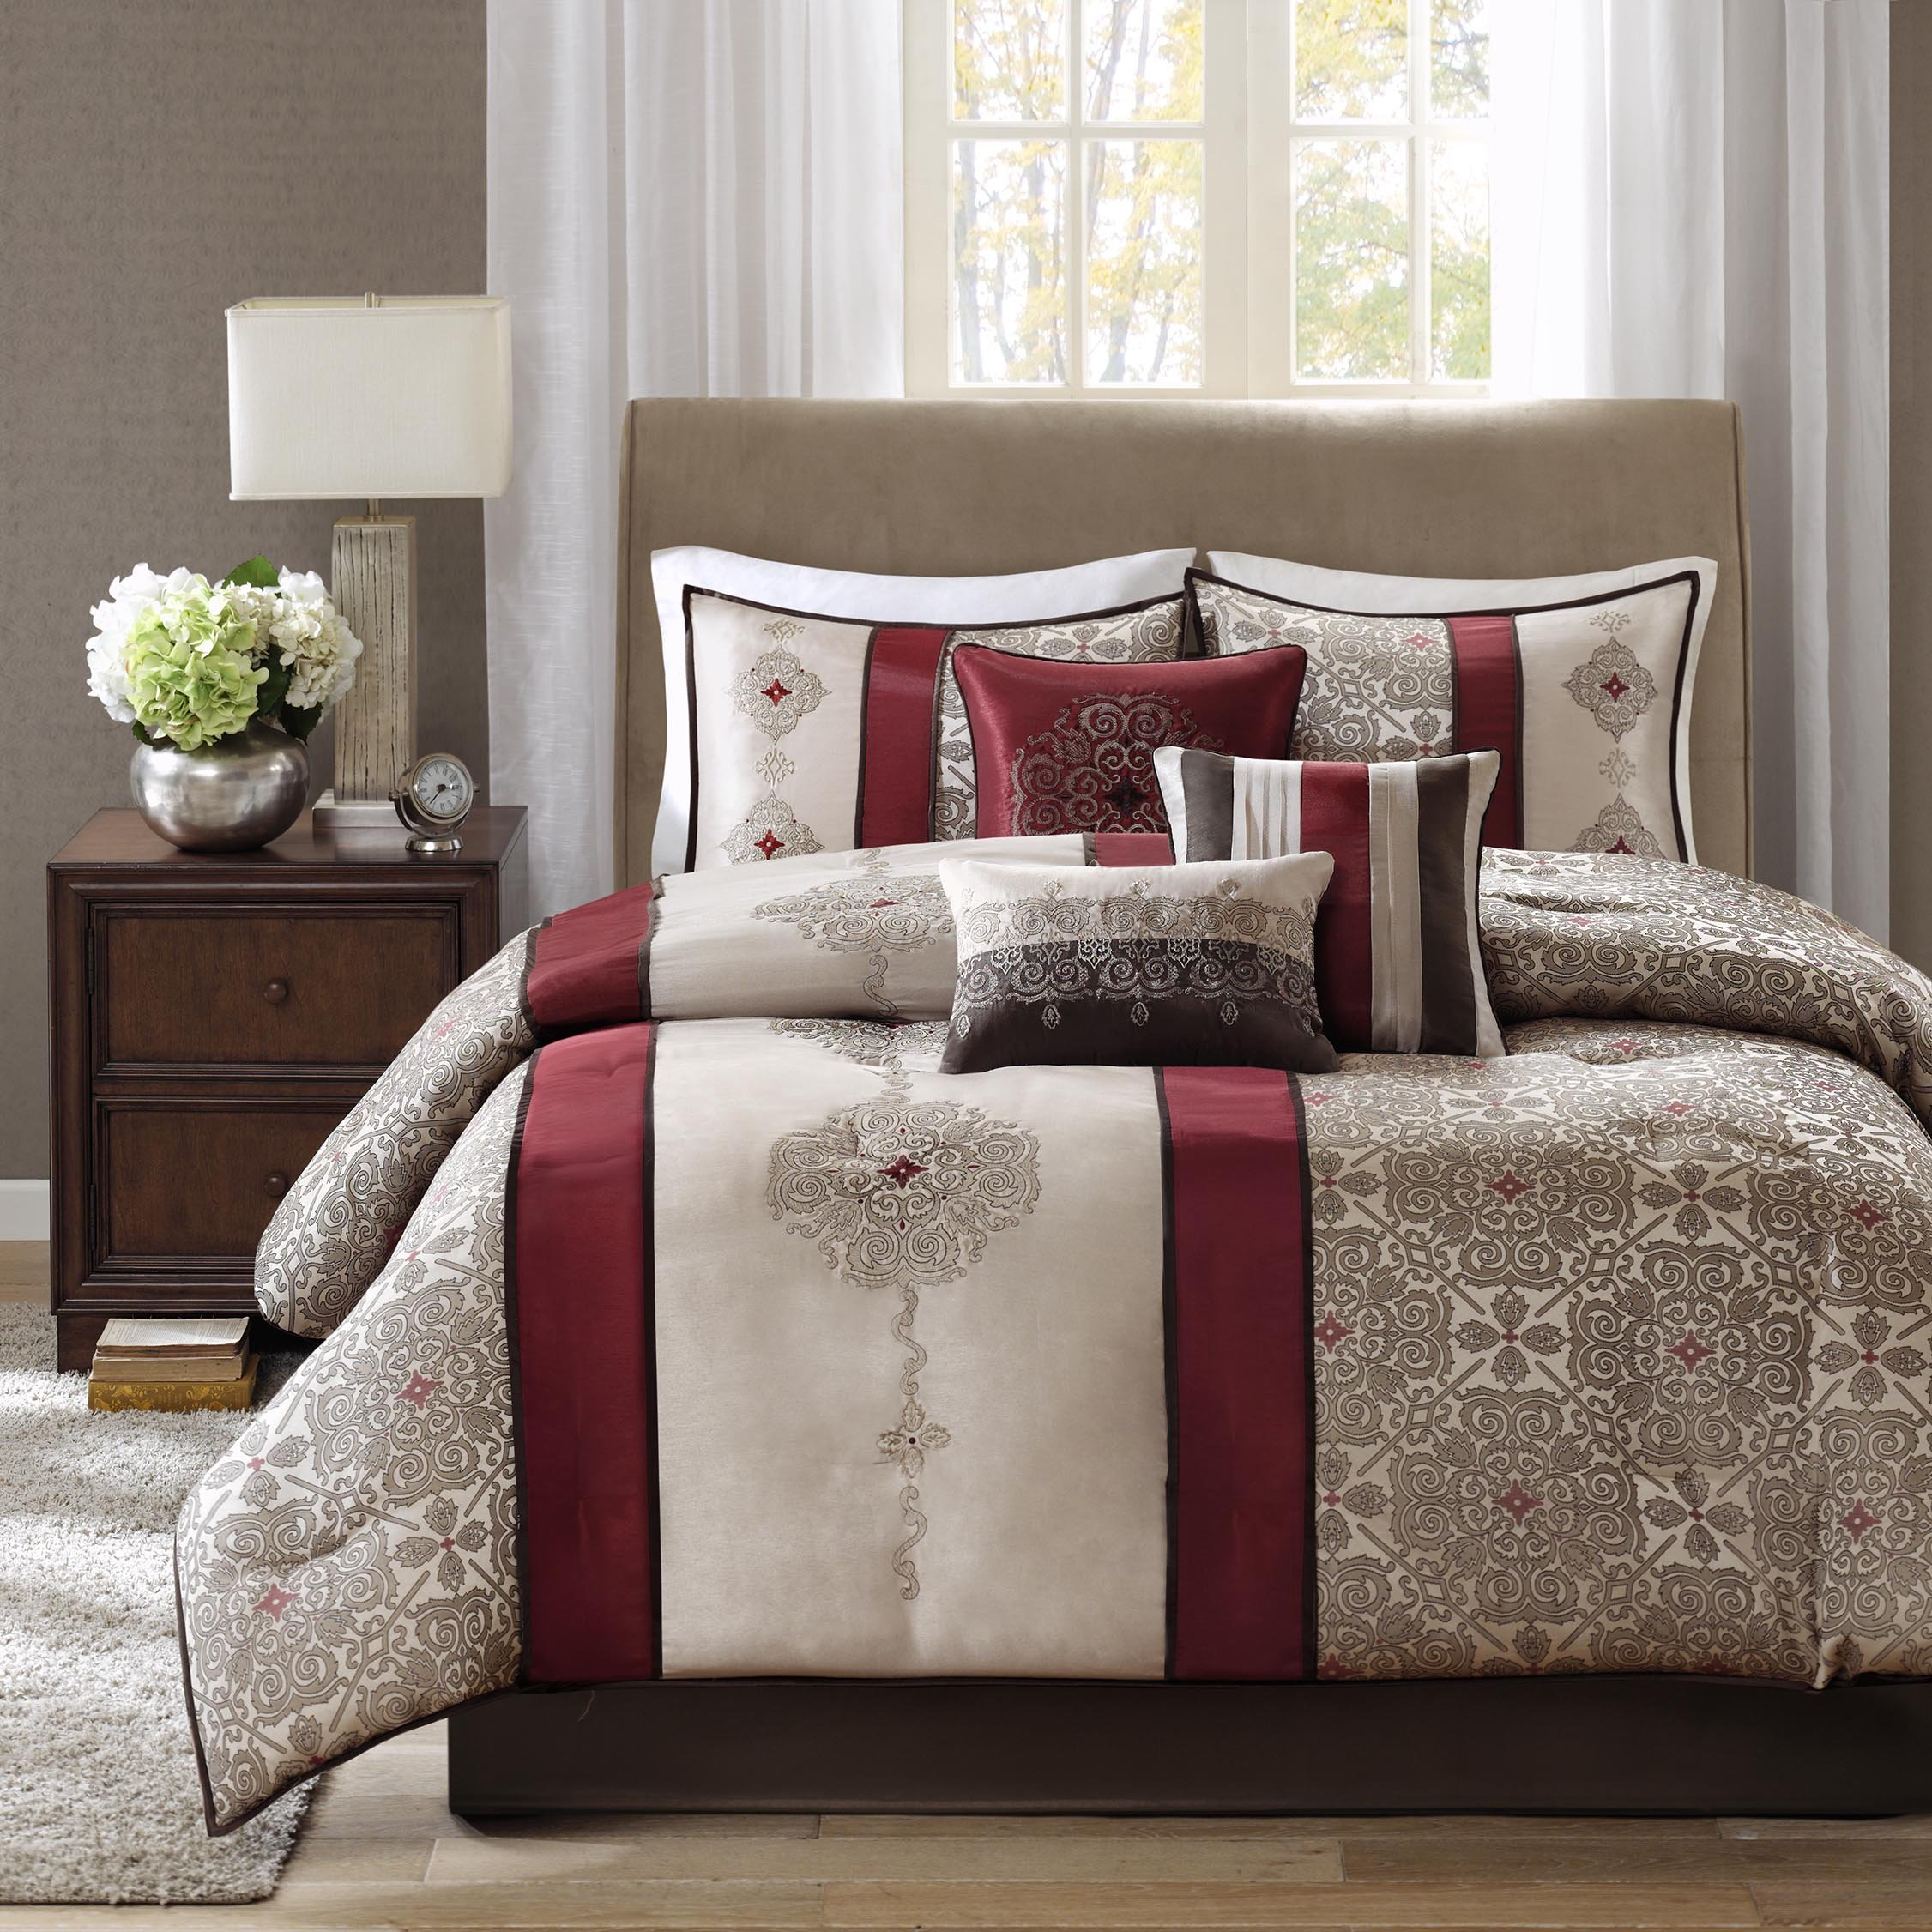 10 Ultra Small Bedrooms With King Size Beds: King Size Comforter Set 7 Pc Bed Red Ultra Soft Microfiber